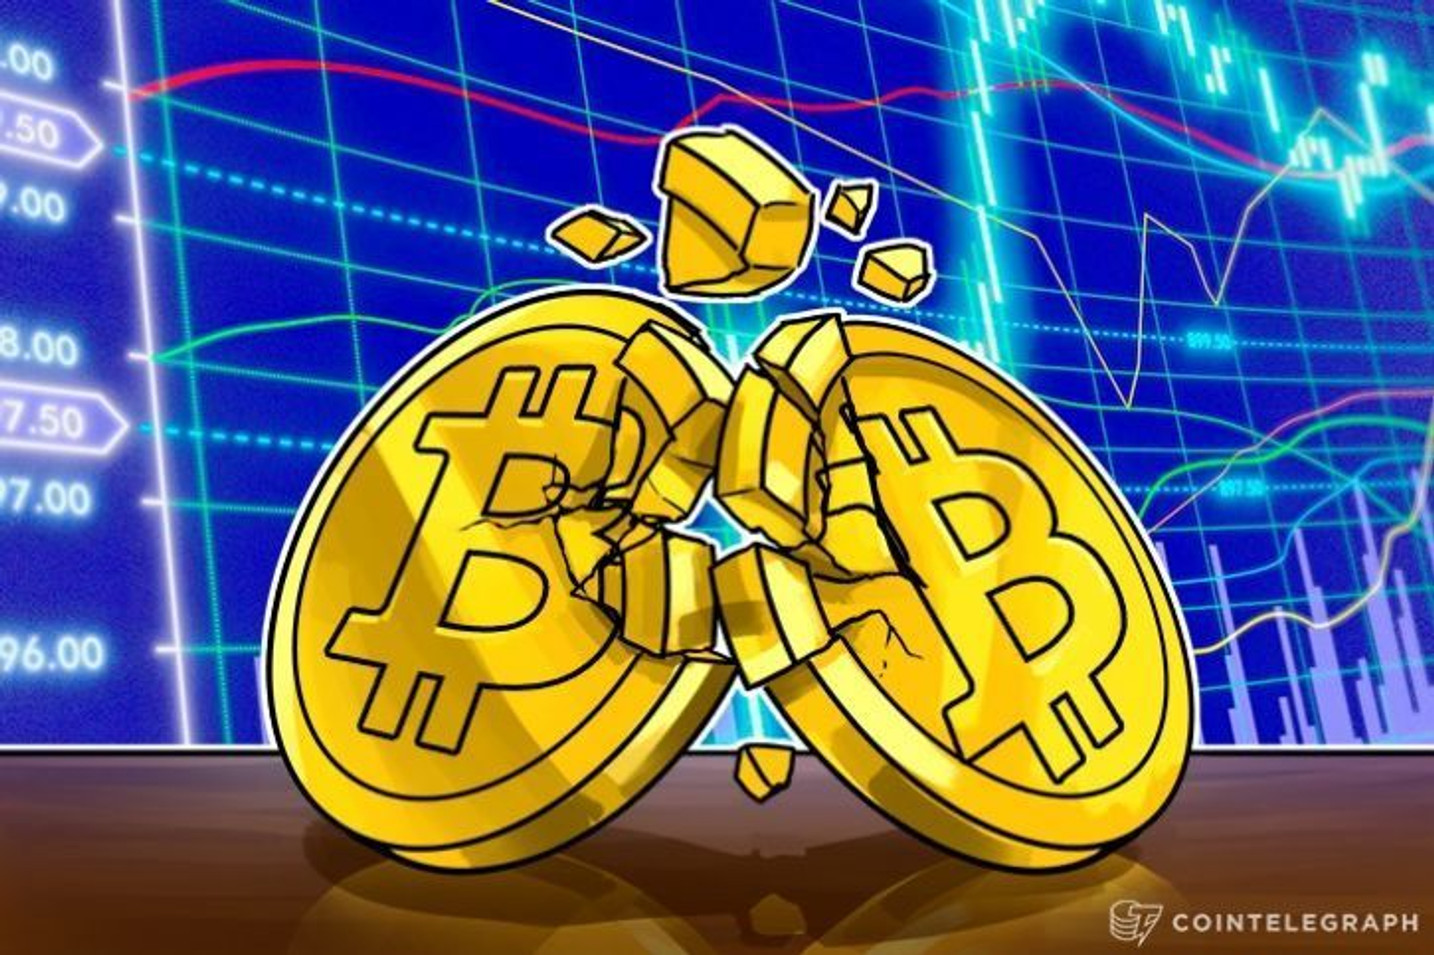 Bitcoin Gold Shakes Prices While Industry Ups 2x Rhetoric